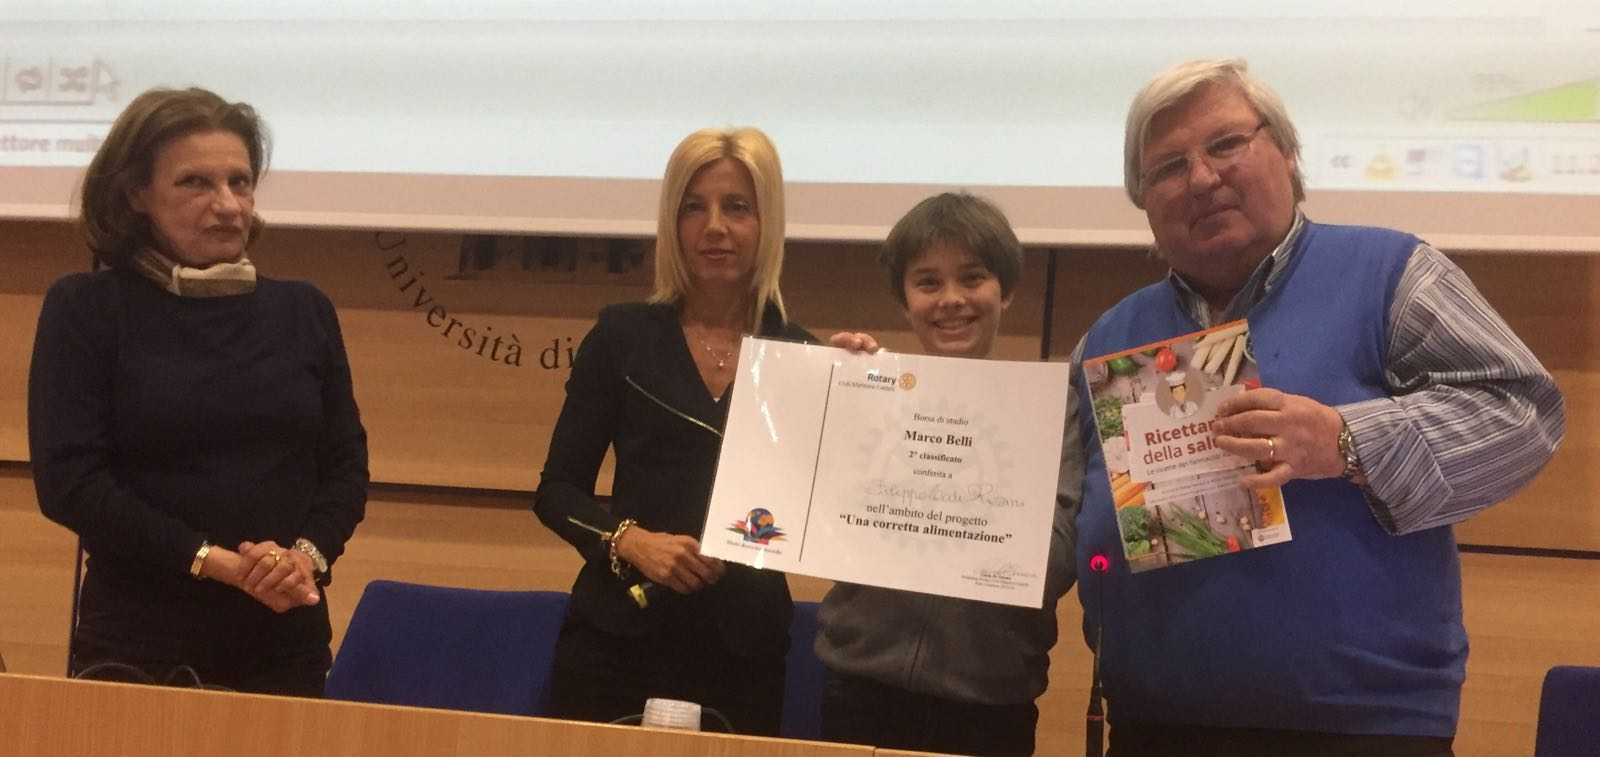 2016 05 16 Borsa di studio Marco Belli Secondo classificato